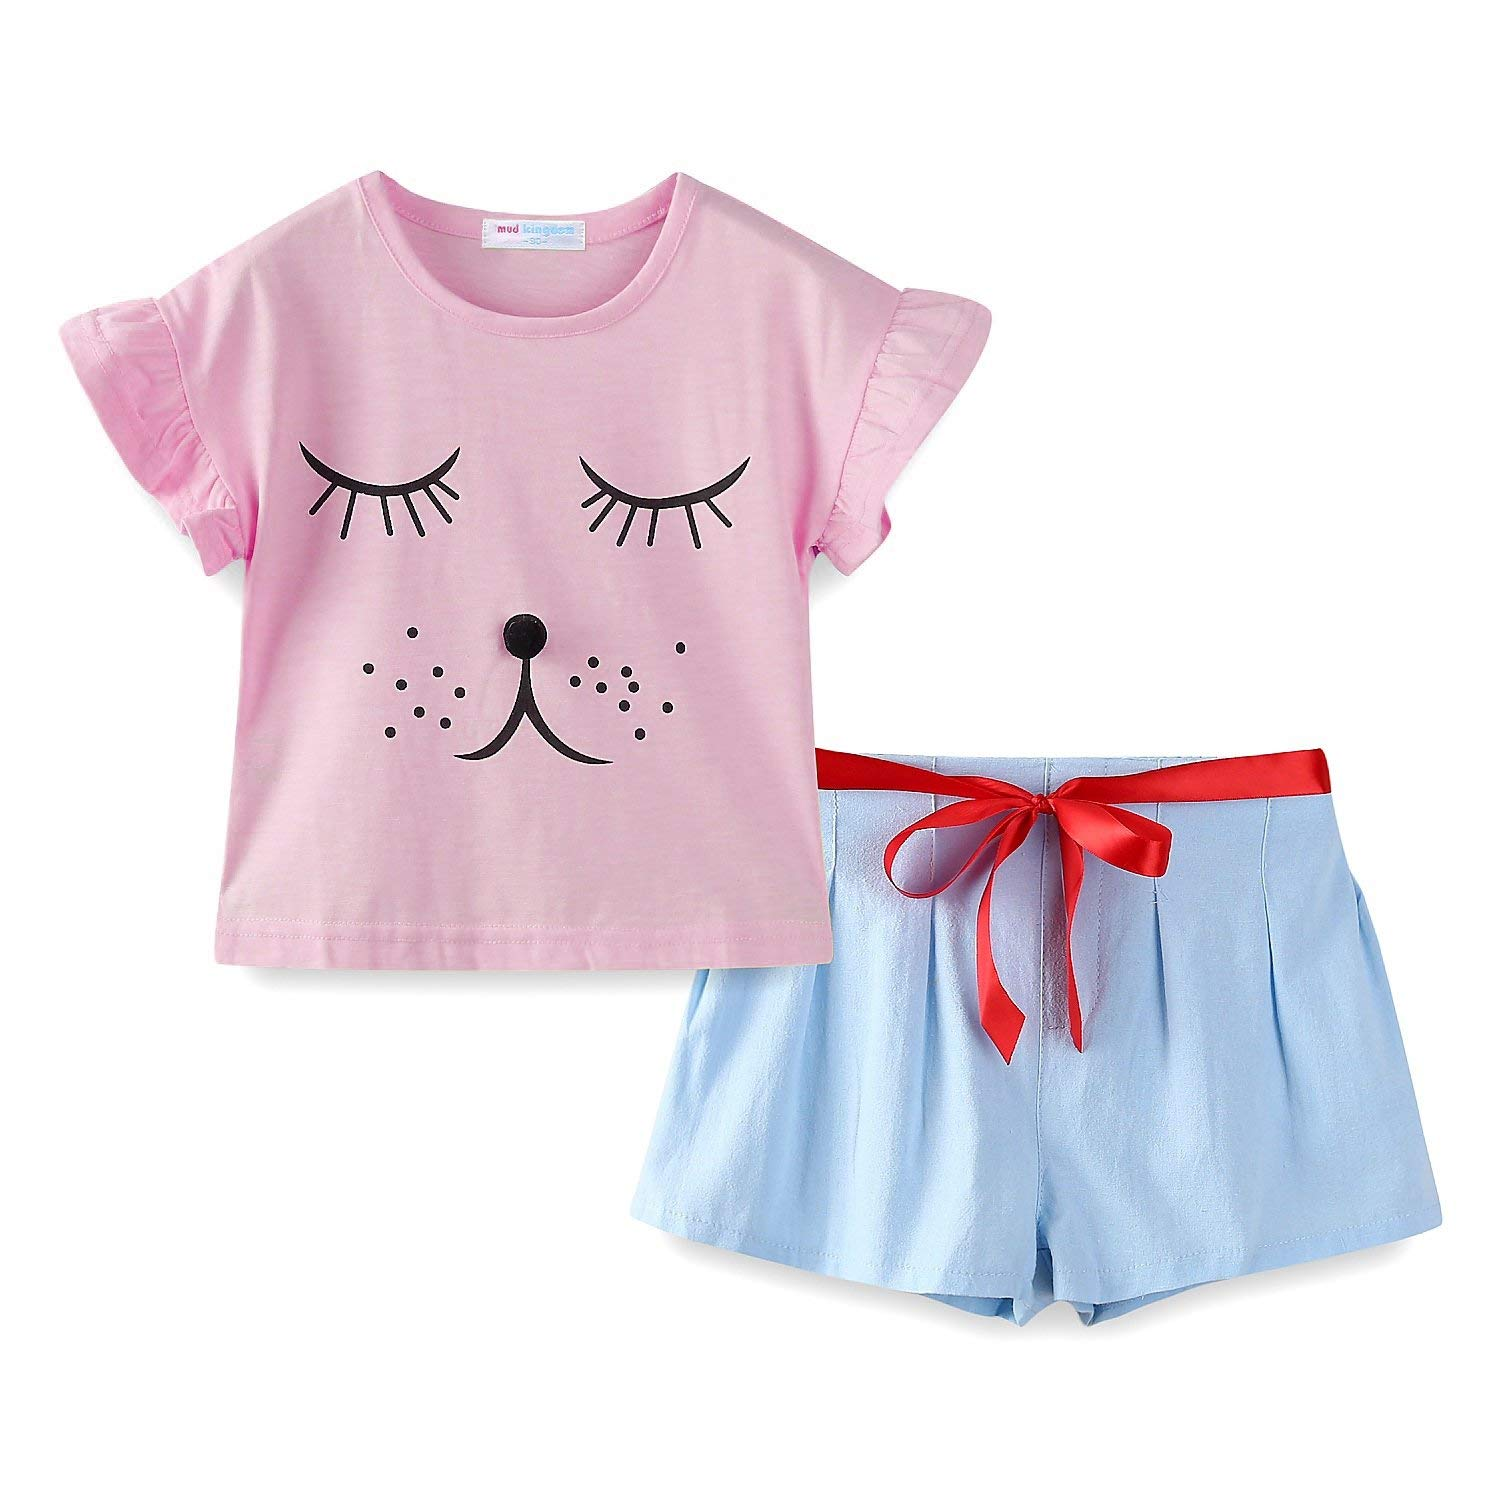 51542a6a166 Get Quotations · Mud Kingdom Girls Outfits Summer Holiday Cute Eyes Closed  Puppy